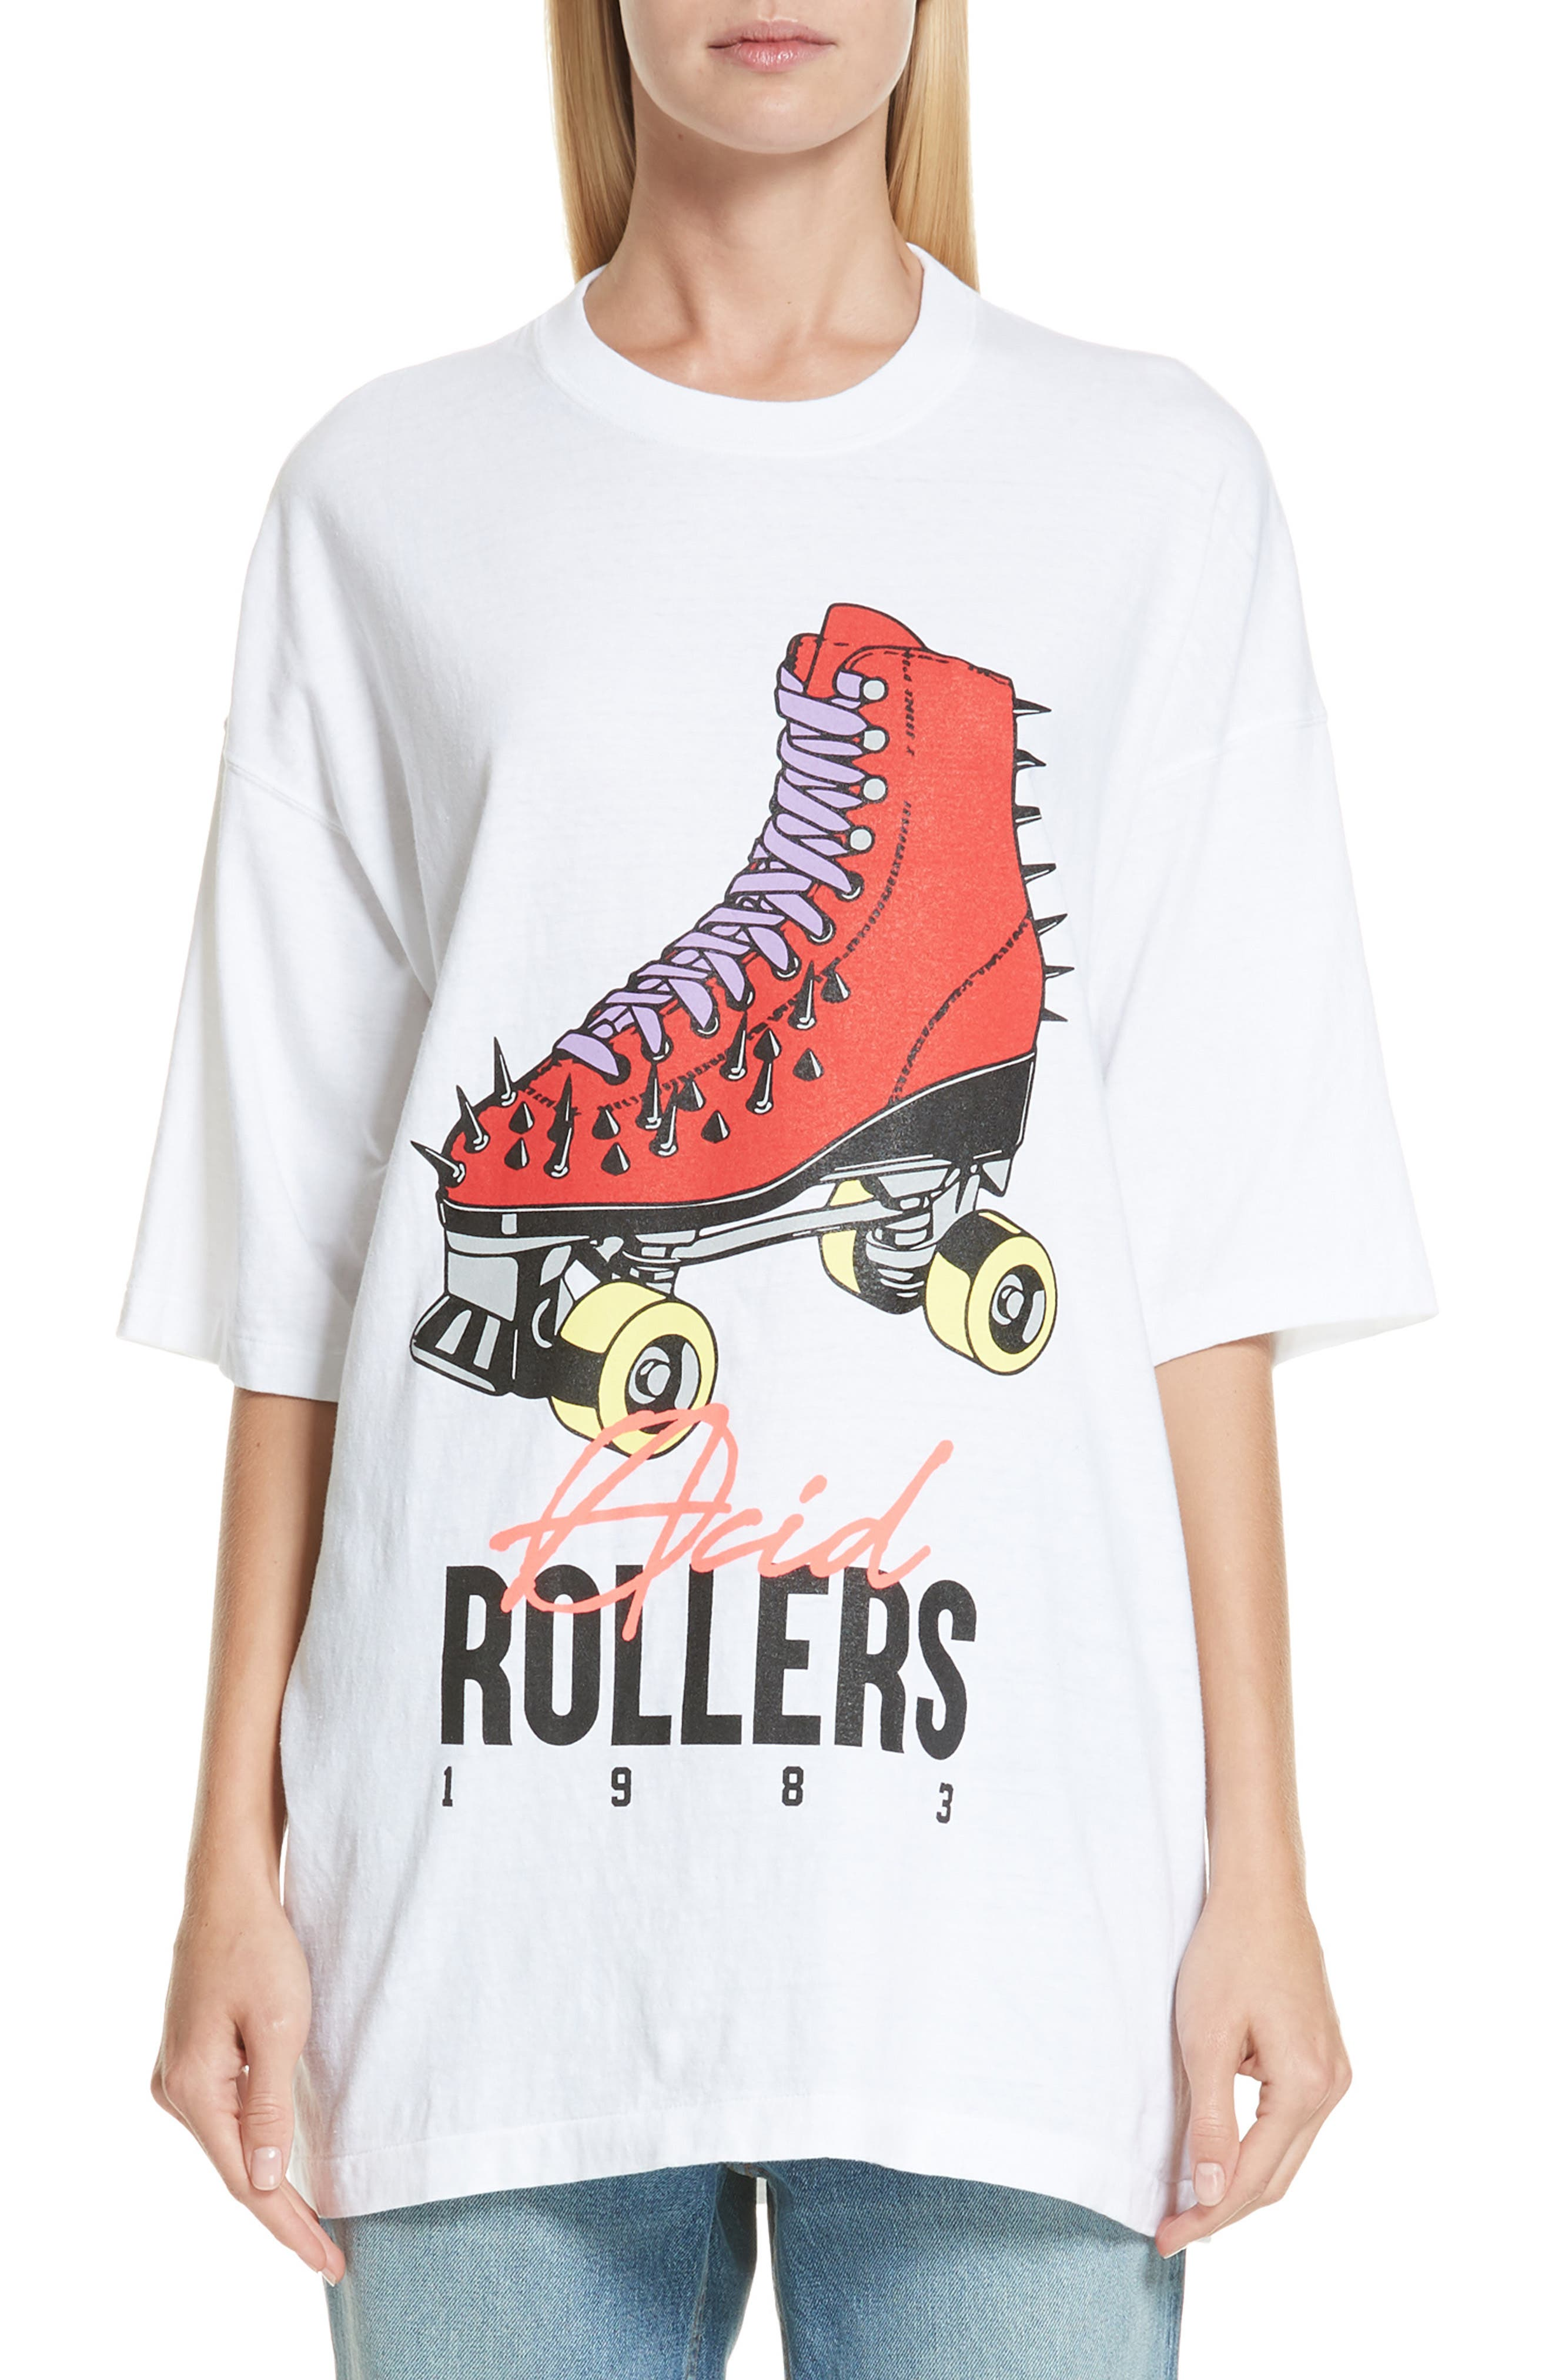 Acid Rollers Tee,                             Main thumbnail 1, color,                             A WHITE